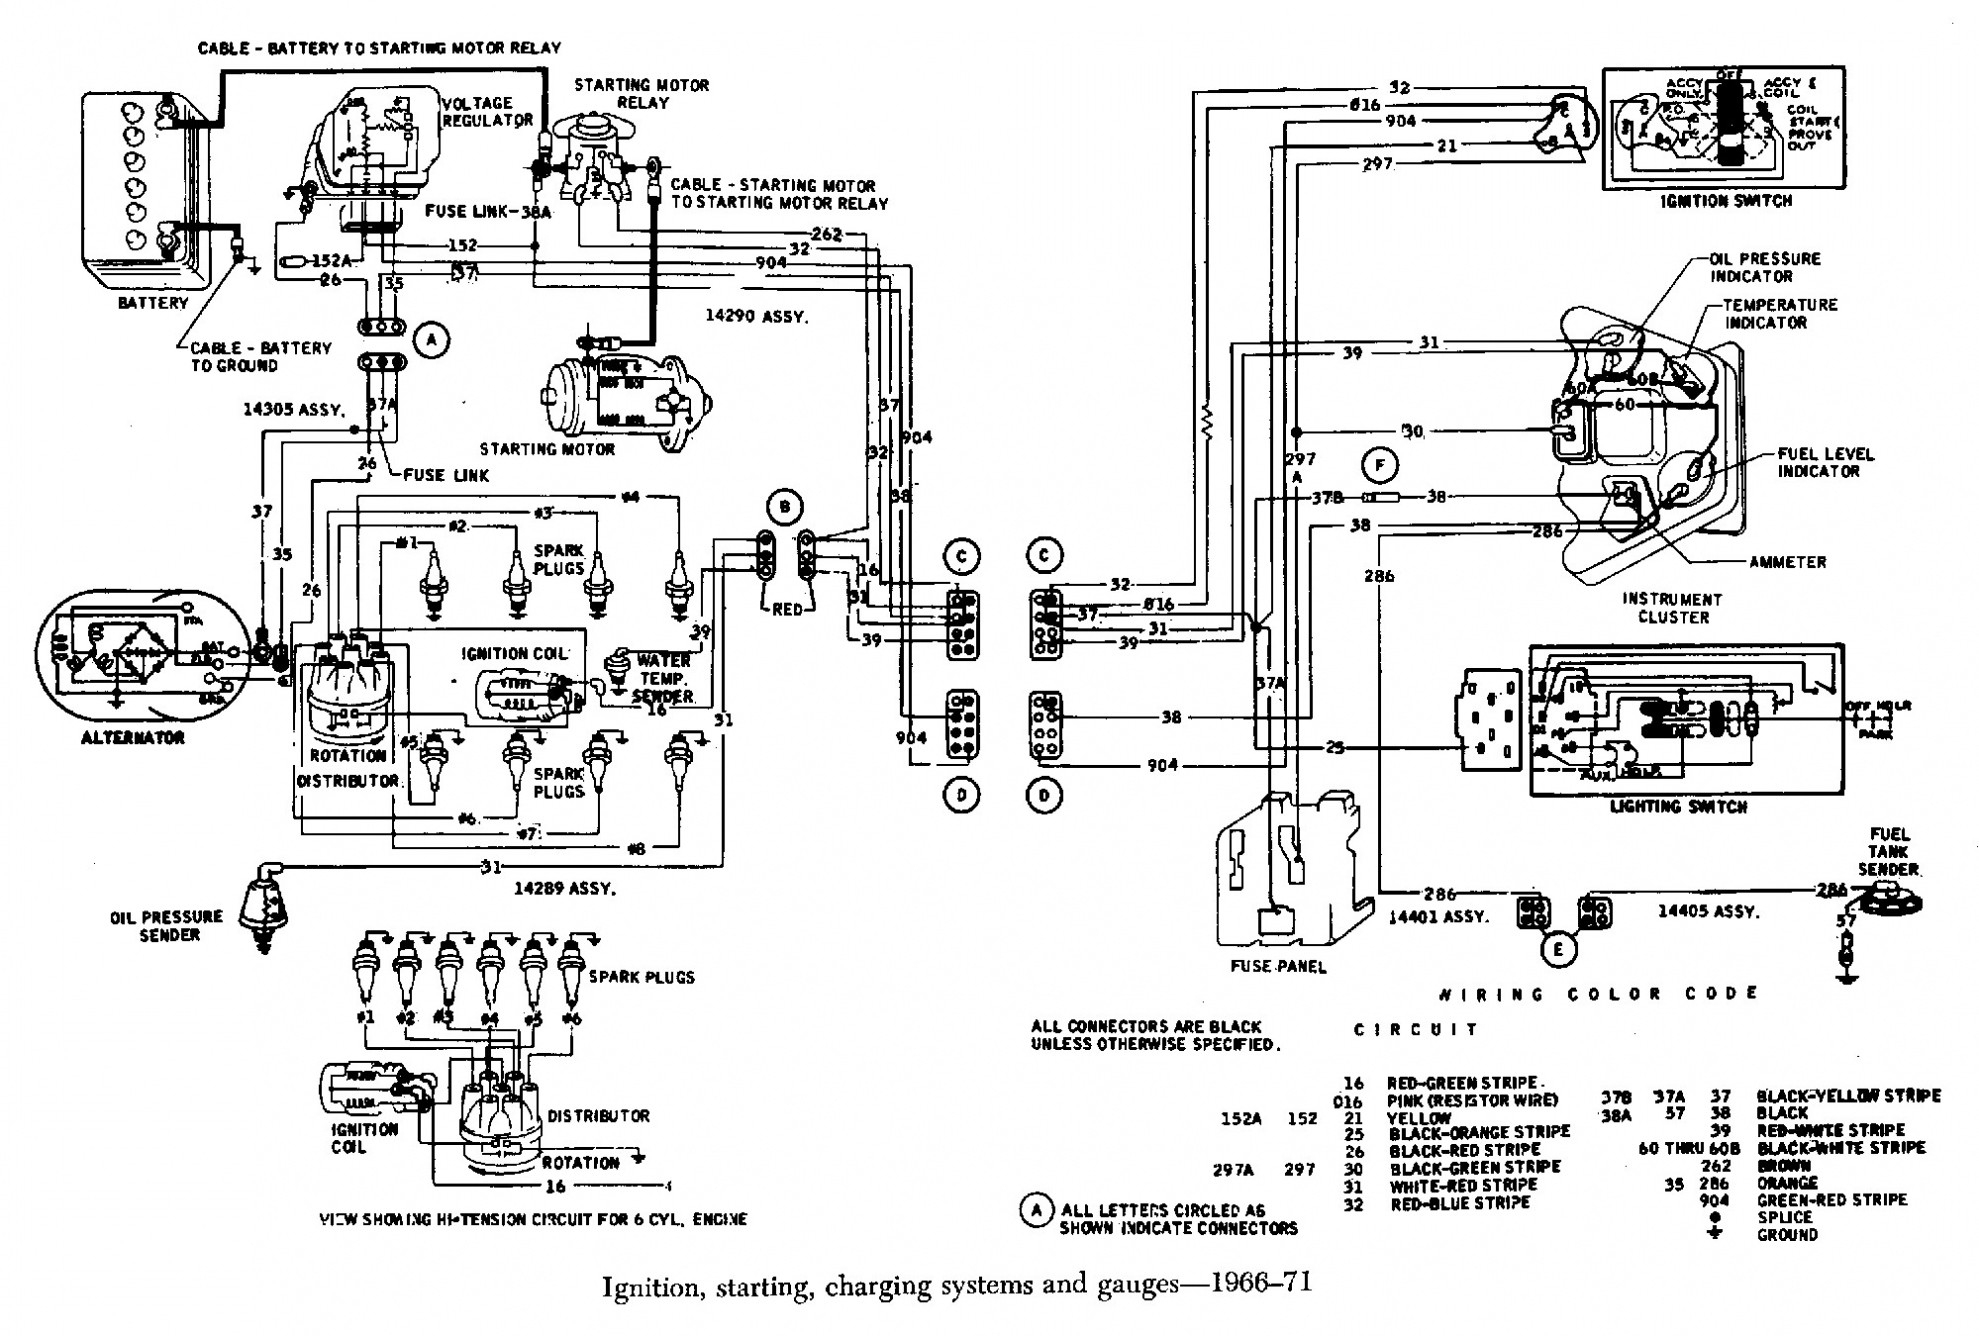 50 Amp Twist Lock Plug Wiring Diagram